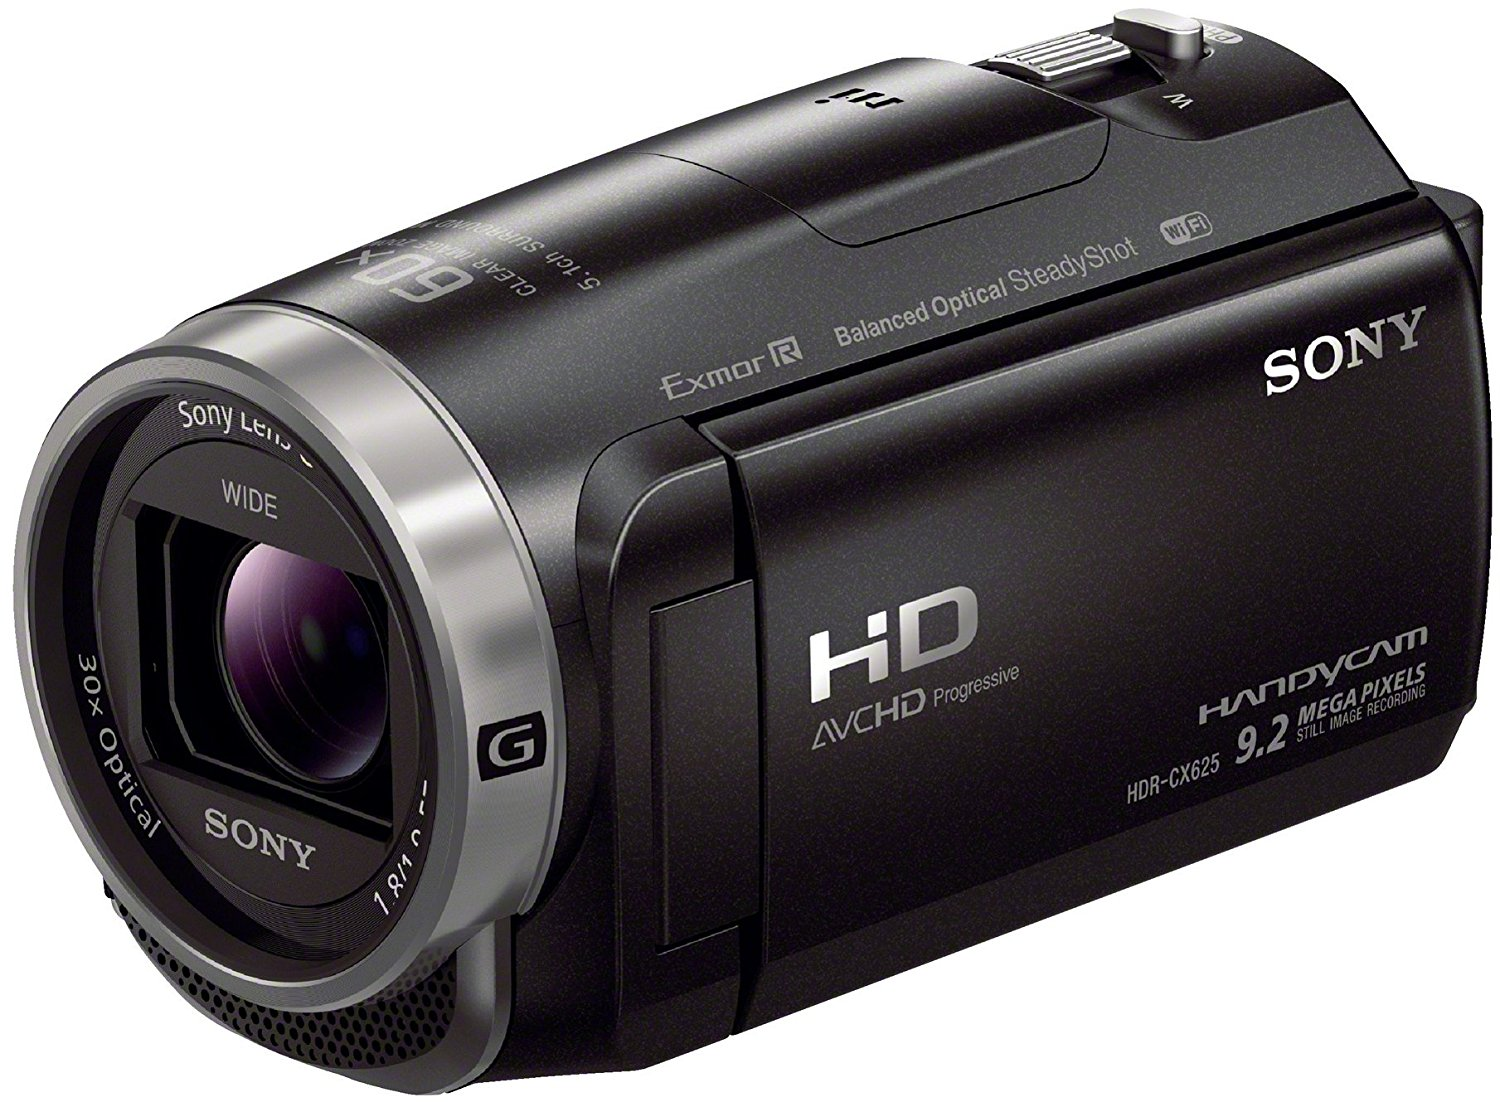 Sony HDRCX625B.CEN - Videocámara (sensor Exmor R CMOS, zoom óptico de 30 aumentos, XAVC S, balanced optical SteadyShot con 5 ejes y cámara lenta) negro